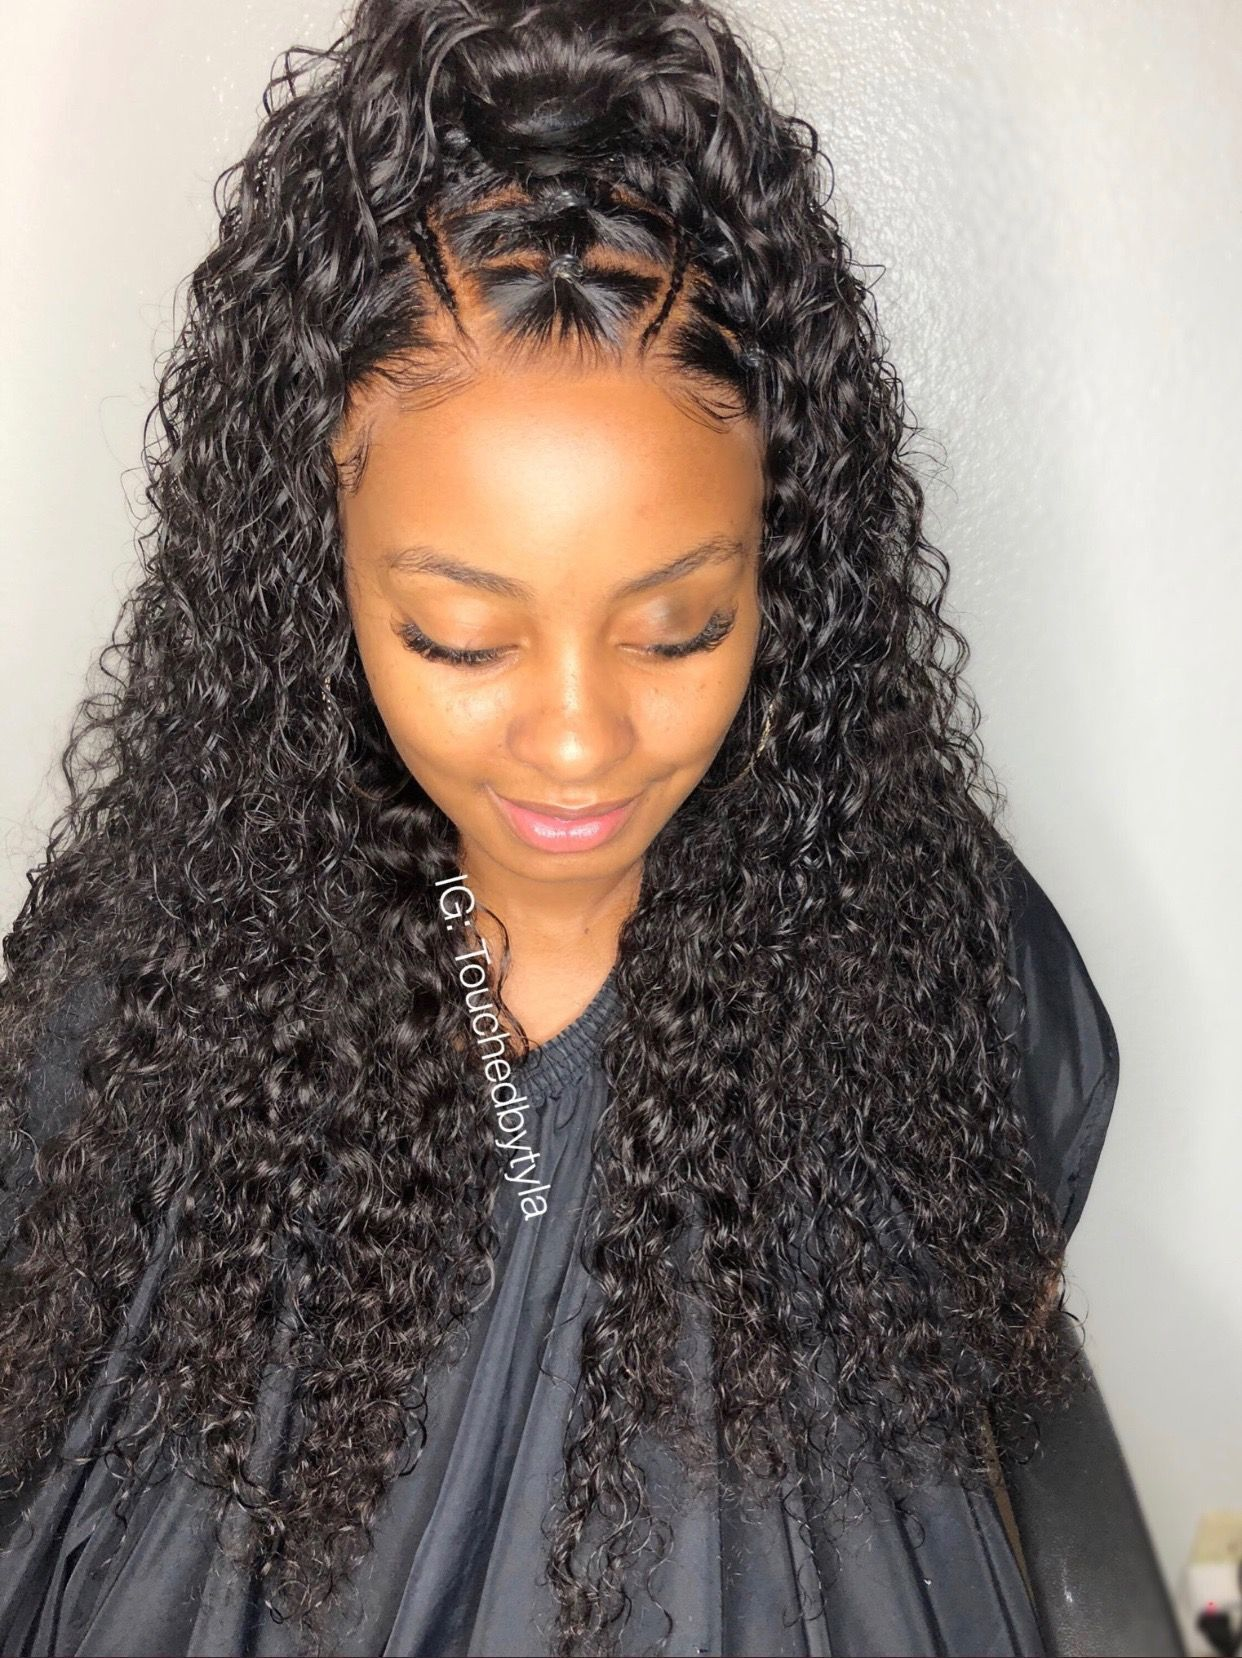 30 Classy Black Ponytail Hairstyles Plus Updo Styles For Natural Hair Don T Get Any Easier Than Black Ponytail Hairstyles Ponytail Styles Ponytail Hairstyles